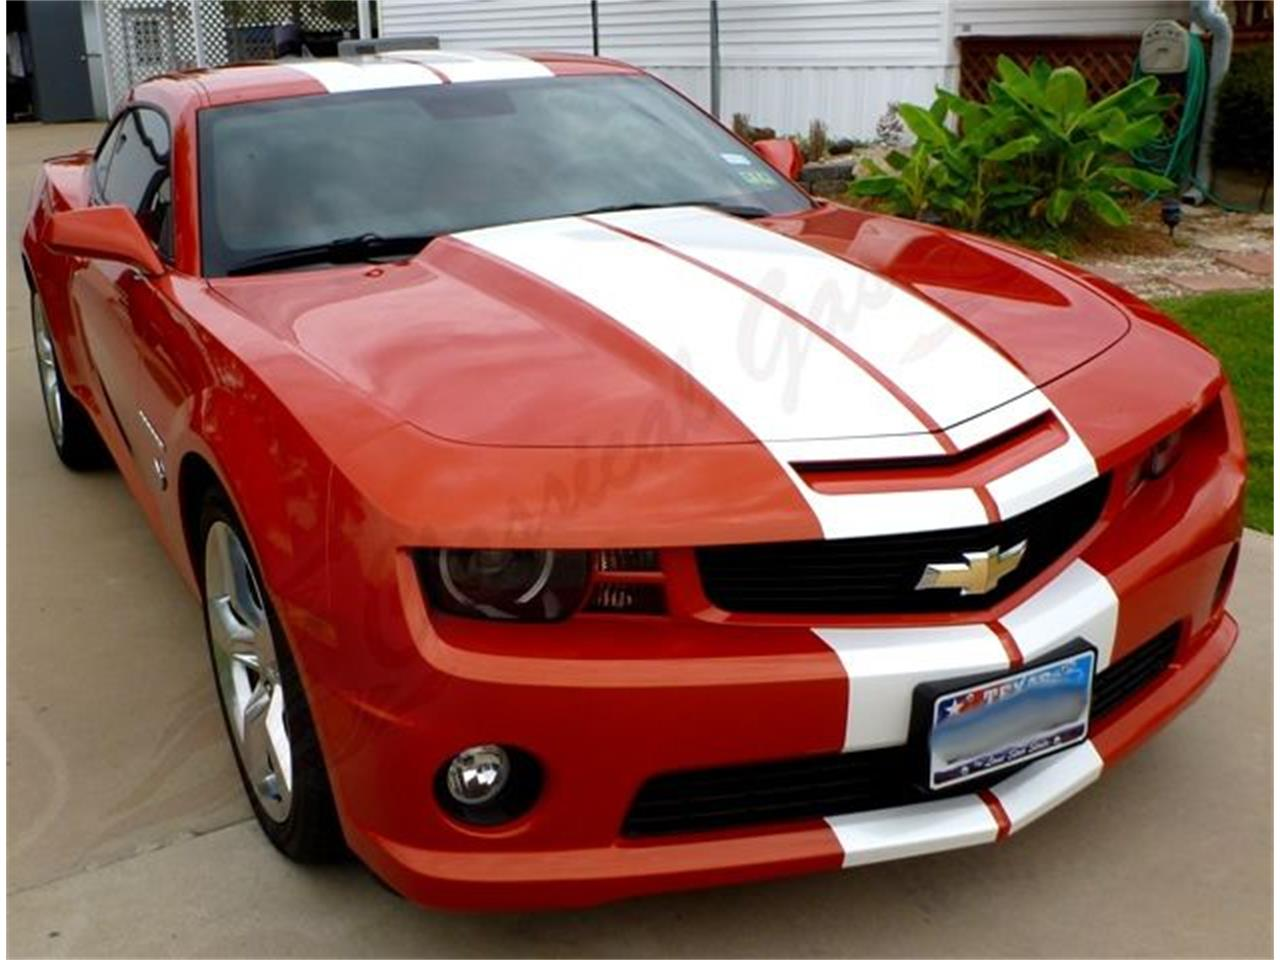 2010 chevrolet camaro ss pace car edition for sale cc 697950. Black Bedroom Furniture Sets. Home Design Ideas